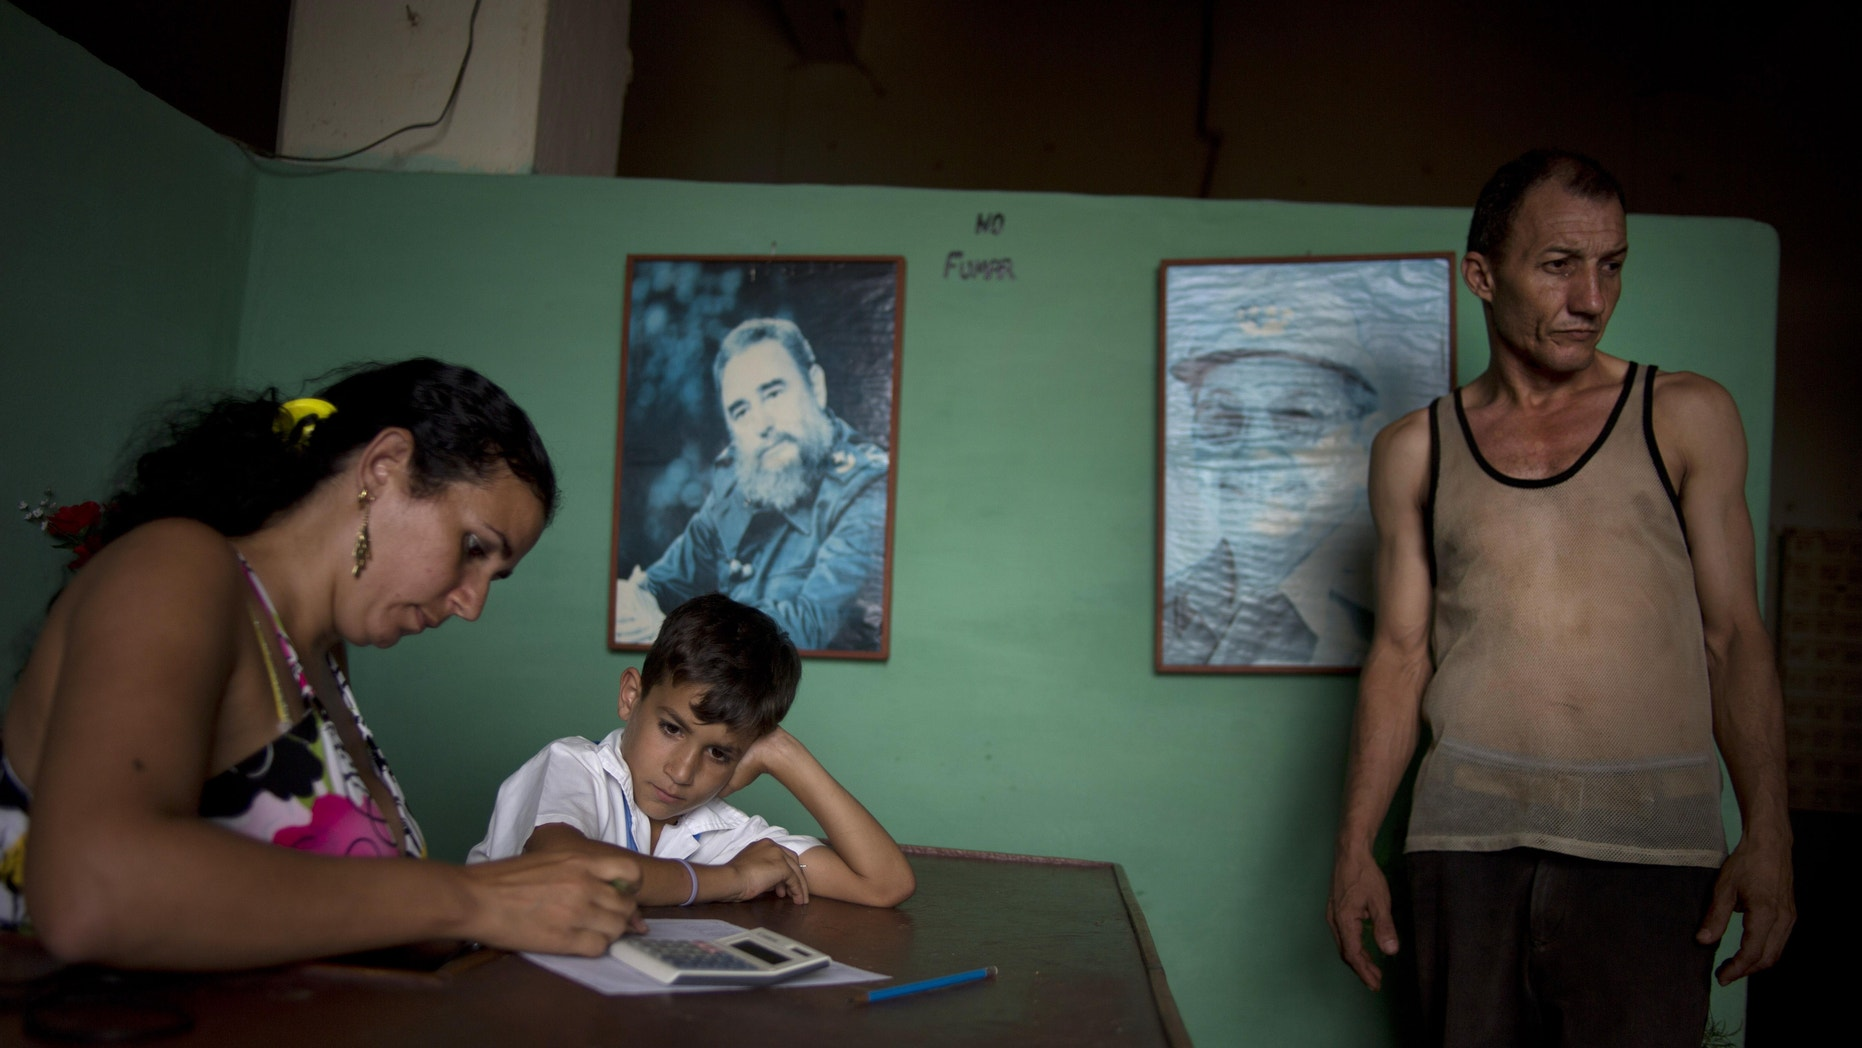 A worker, right, leaves the tobacco factory as a child waits for his mother to finish at a warehouse in the western province of Pinar del Rio, Cuba, Tuesday, Feb. 25, 2014. Pictures of Cuba's Fidel Castro and Raul Castro hang on the wall. Cigar enthusiasts from around the world come to Cuba during the annual Cigar Festival to visit tobacco farms and factories and savor new cigar brands. (AP Photo/Ramon Espinosa)